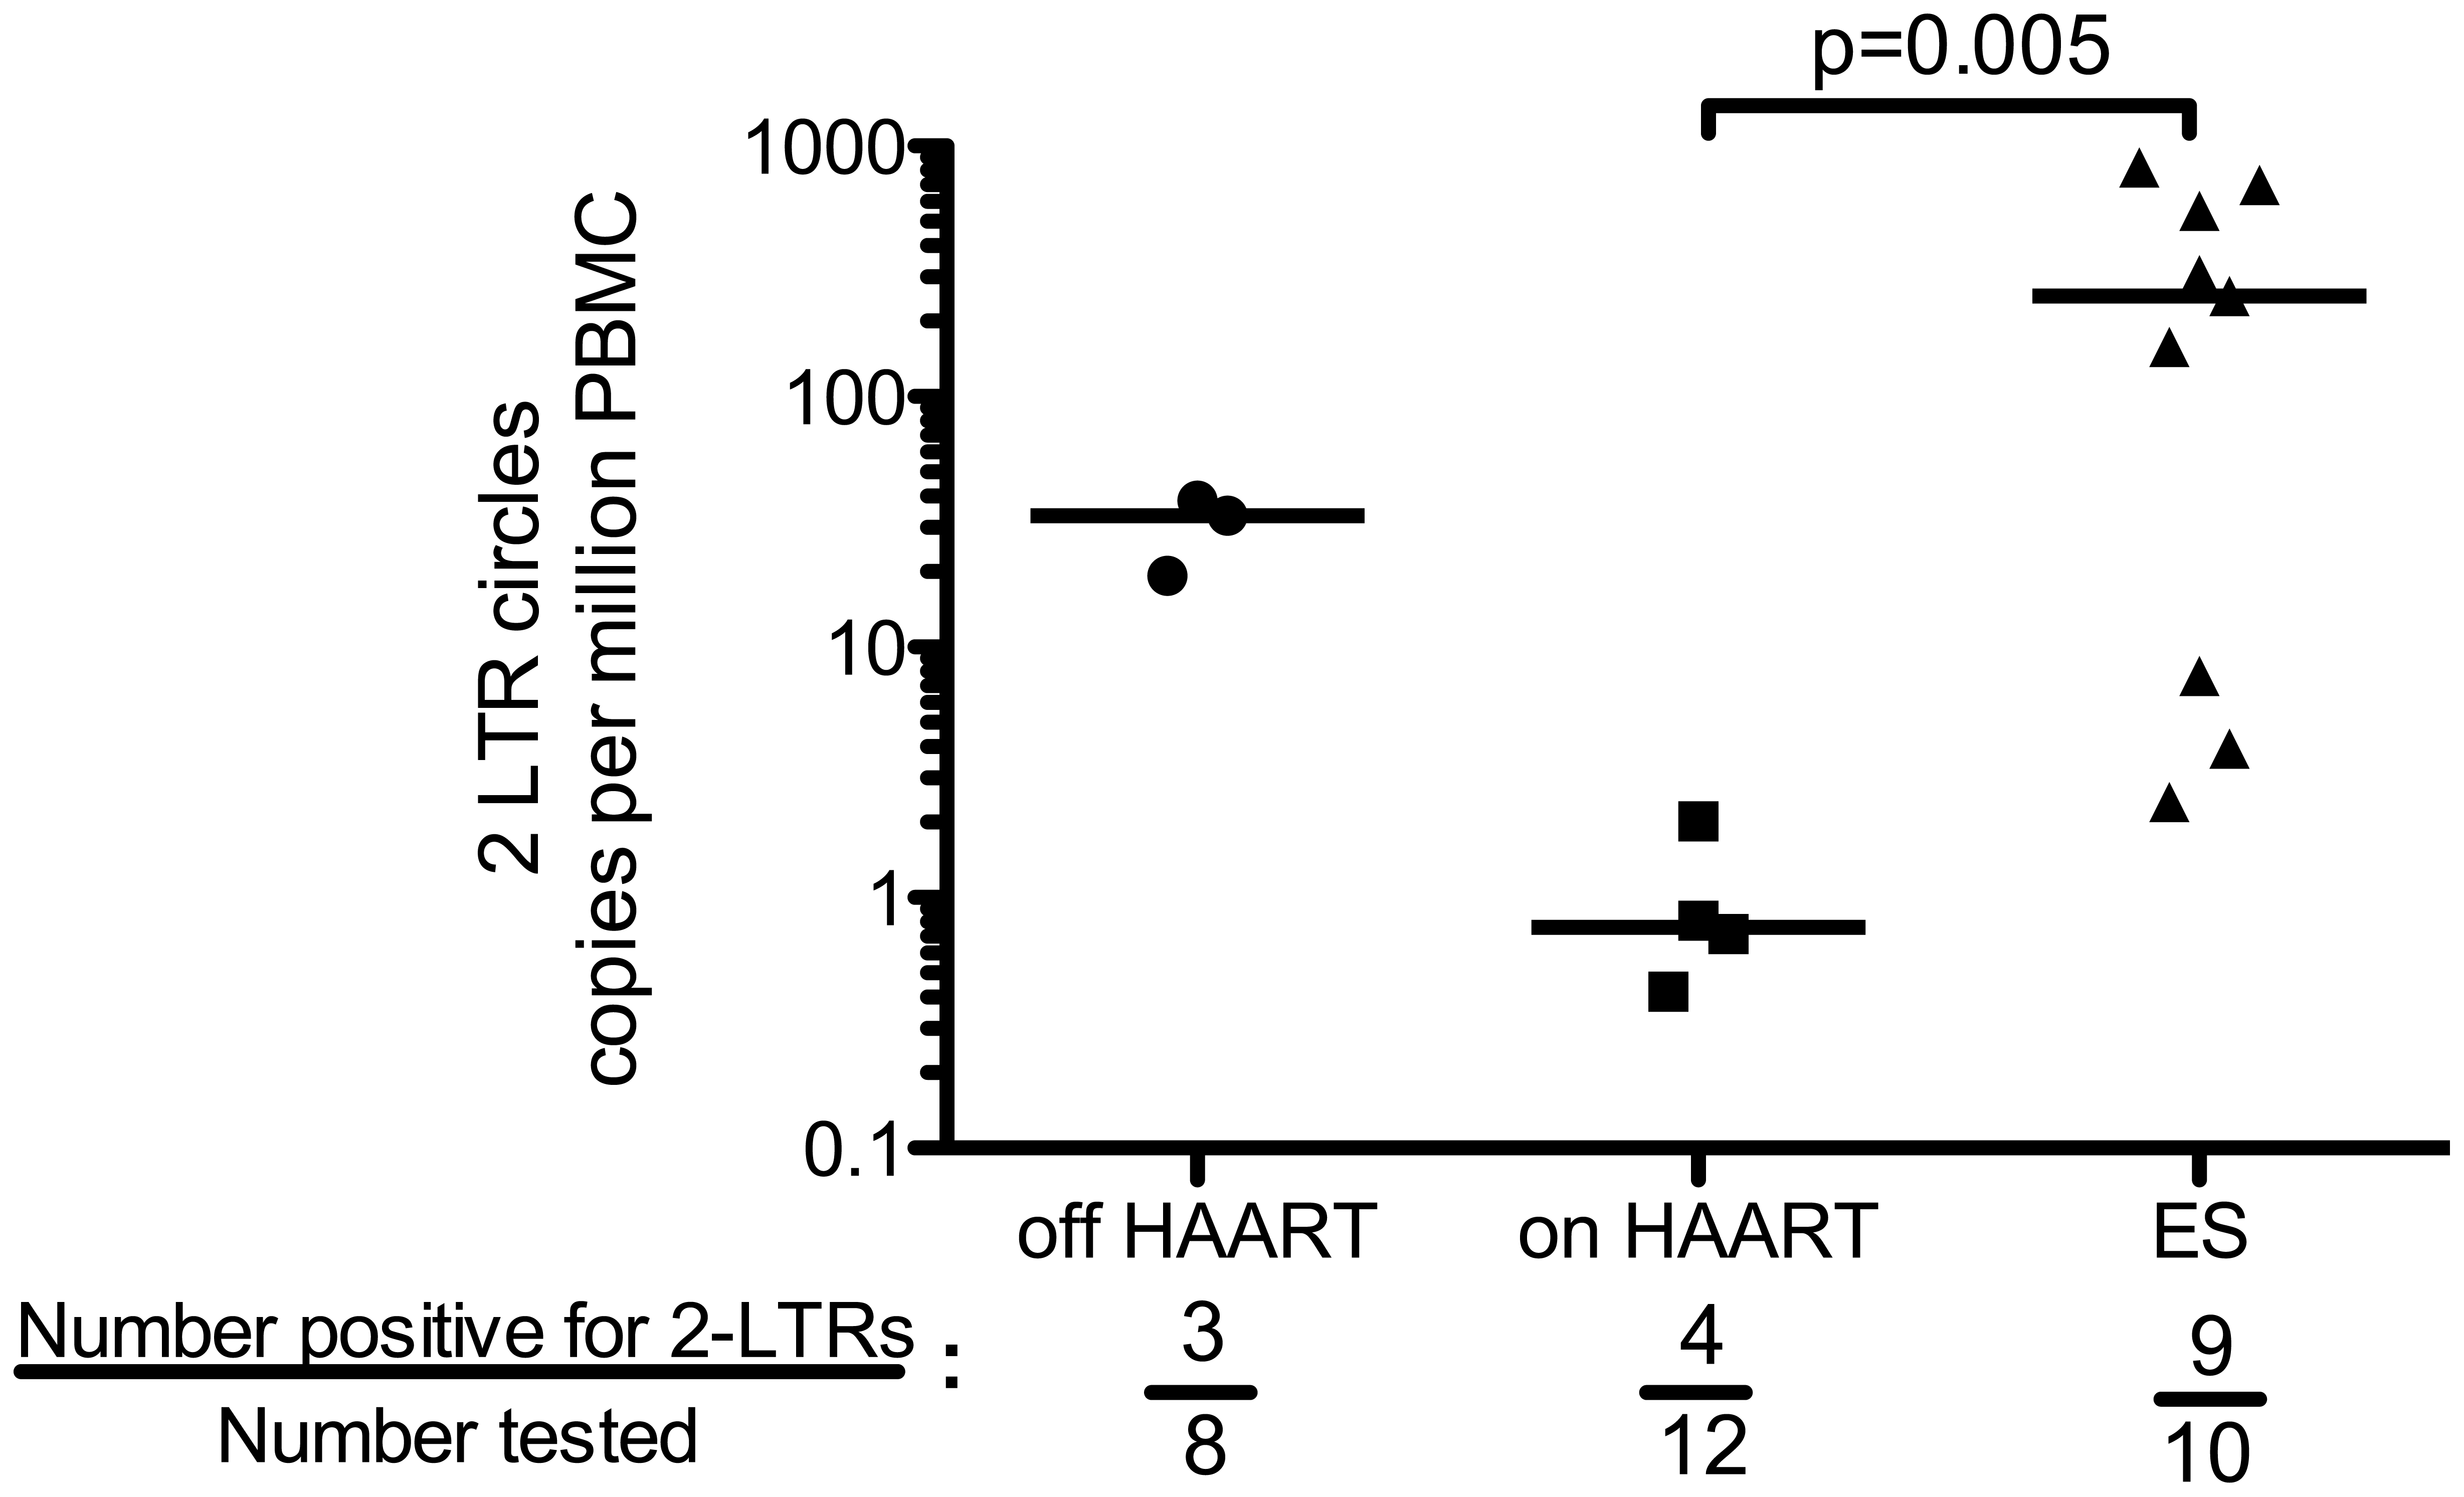 ES patients harbor higher levels of 2-LTR circles than HIV+ patients on HAART.